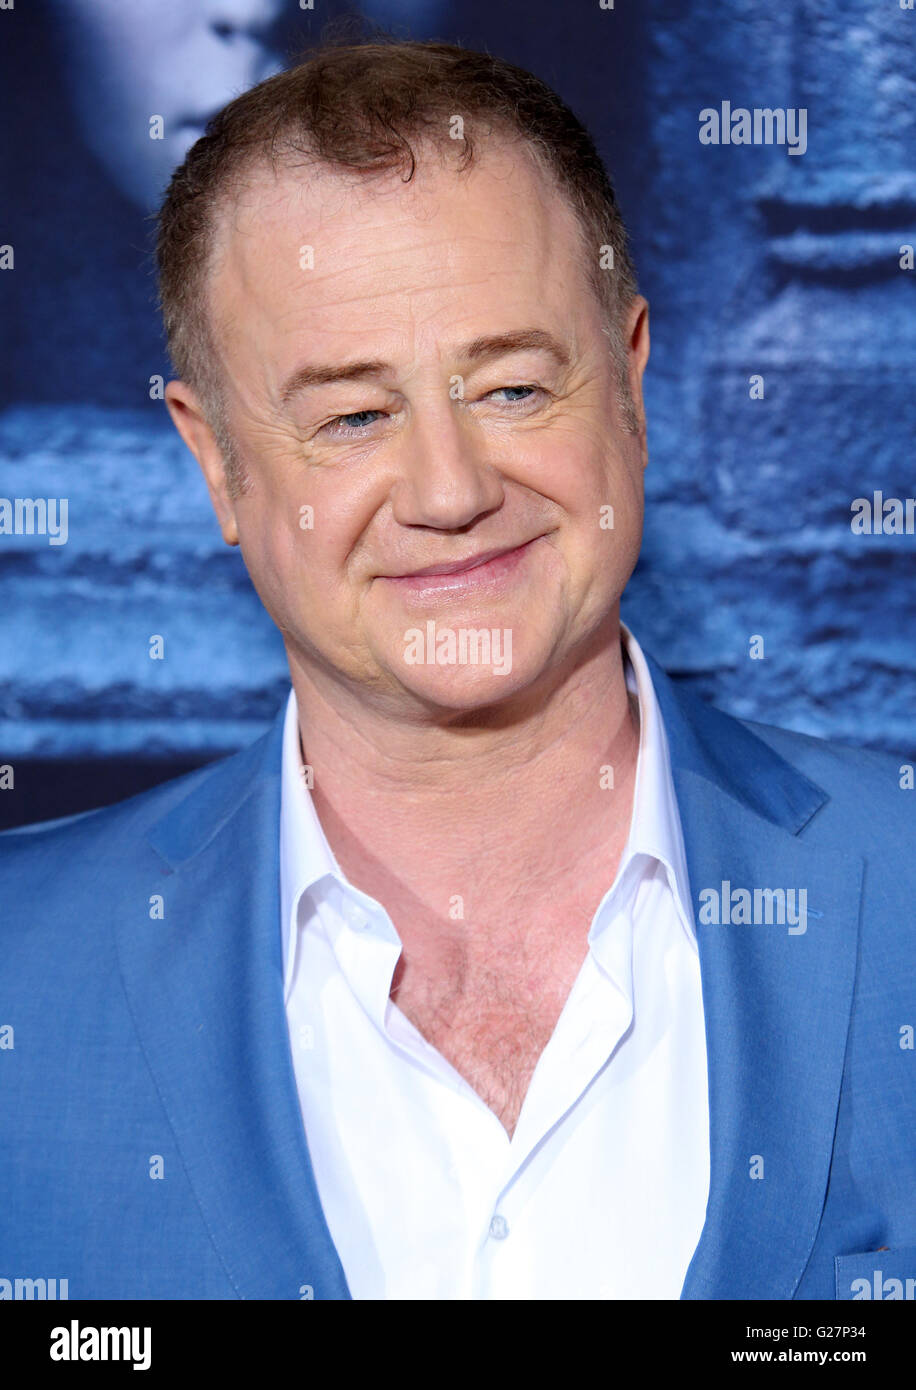 Los Angeles premiere for season 6 of HBO's 'Game of Thrones' - Arrivals  Featuring: Owen Teale Where: - Stock Image